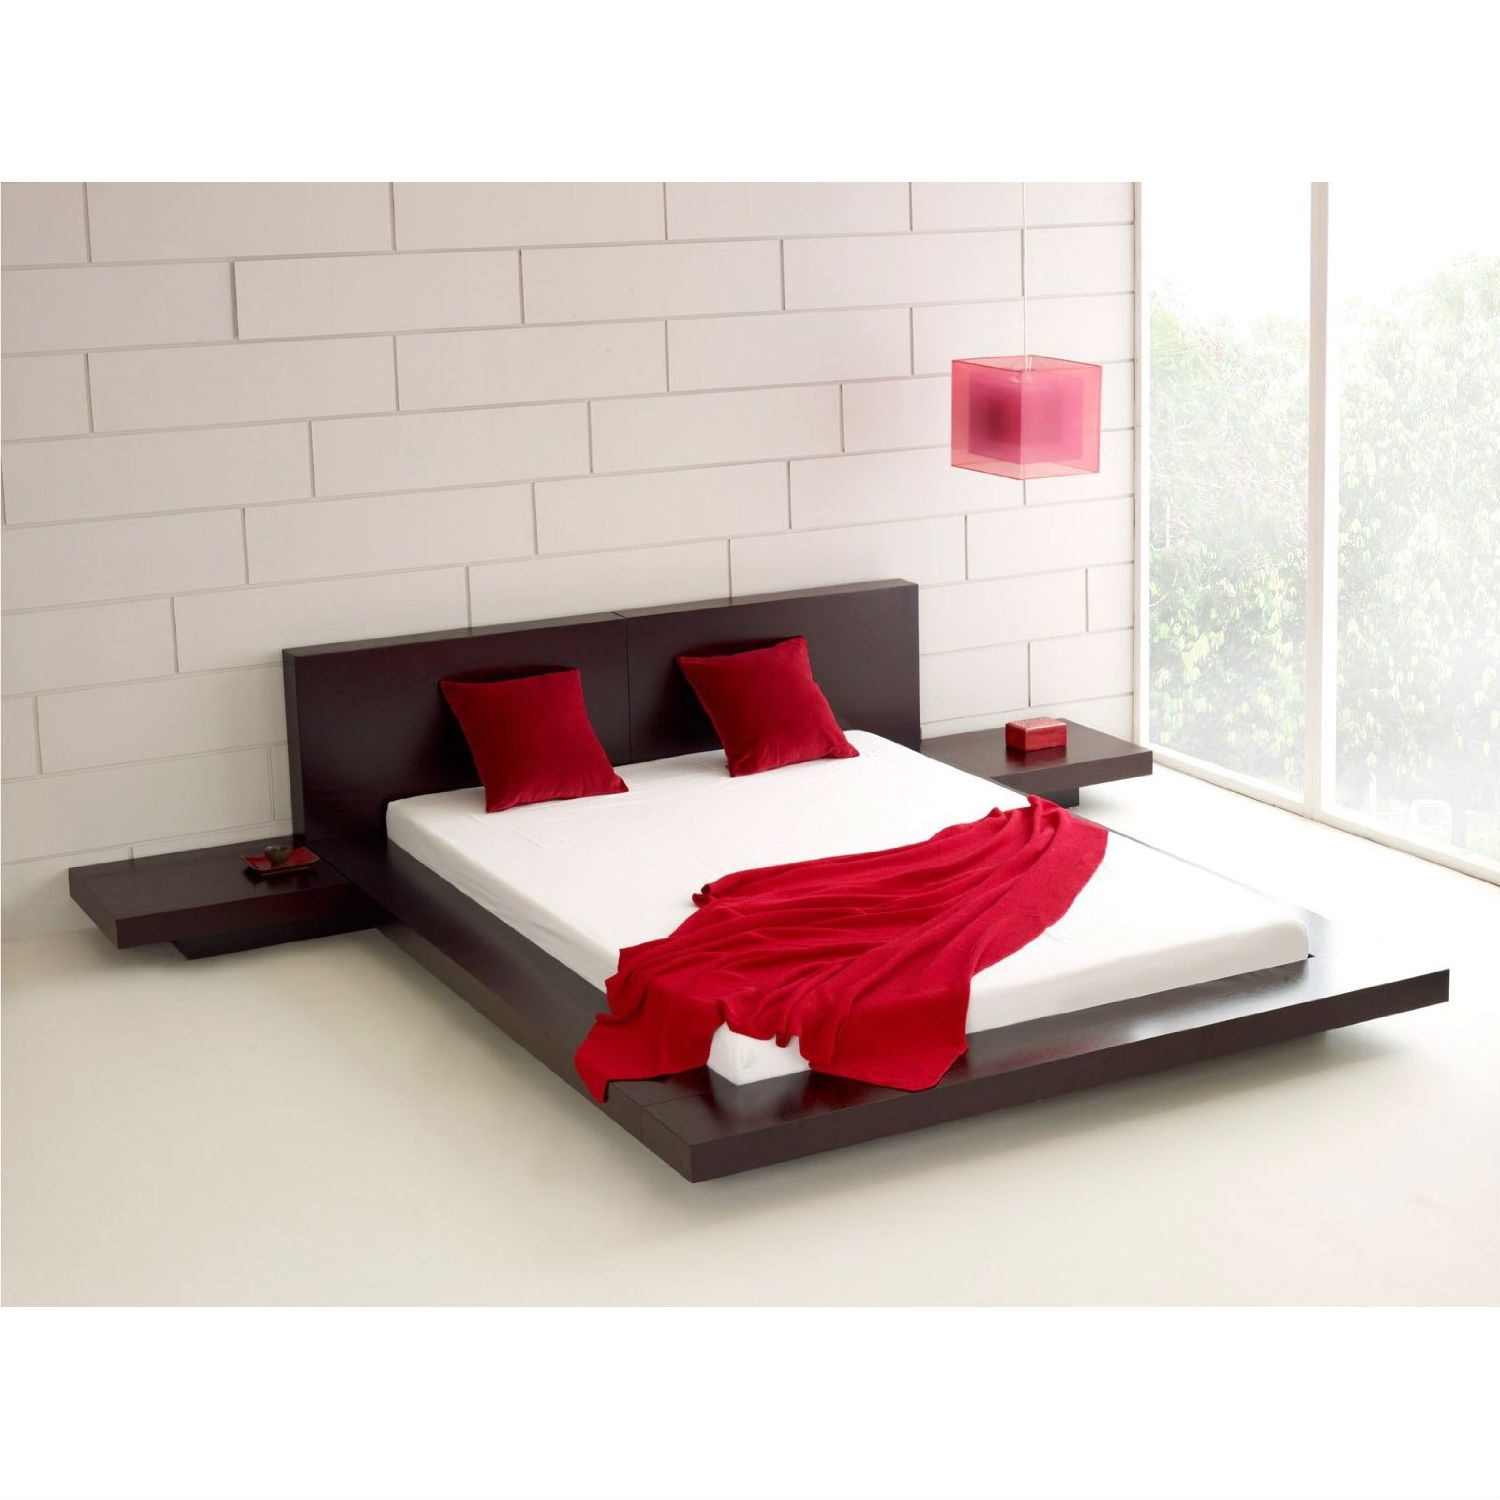 Queen Modern Platform Bed W Headboard And 2 Nightstands In Espresso Fastfurnishings Com